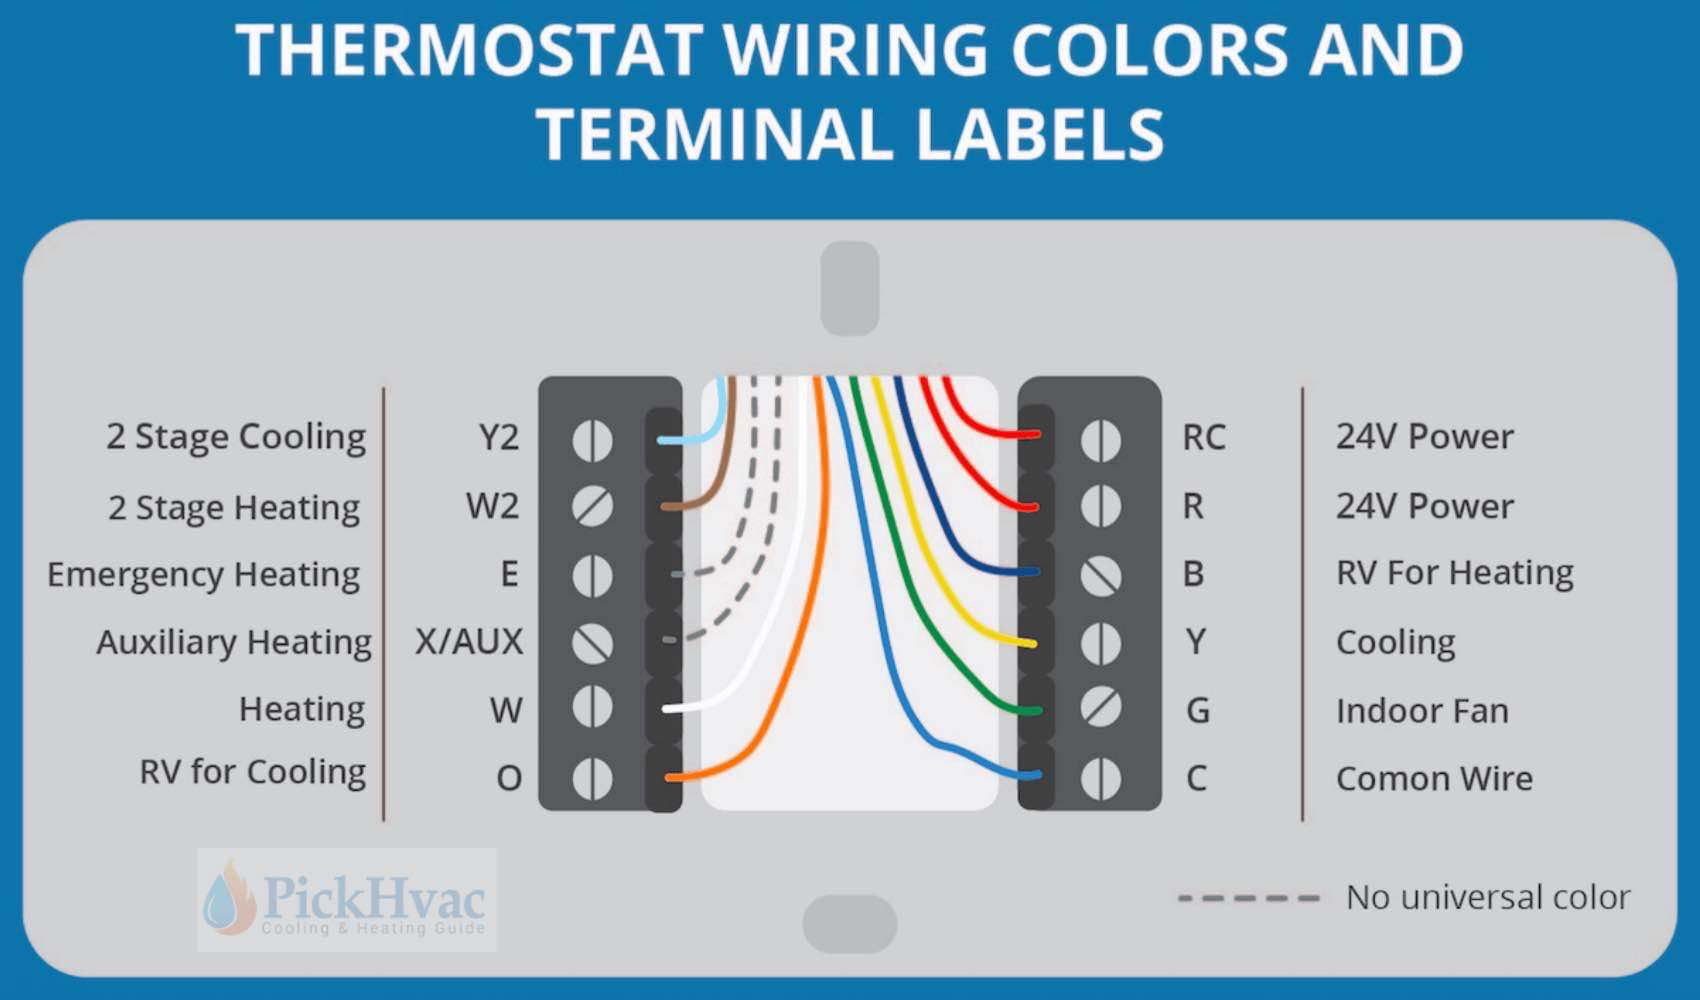 In-Depth Thermostat Wiring Guide For Homeowners - Standard Nest E Wiring Diagram For Furnace Only